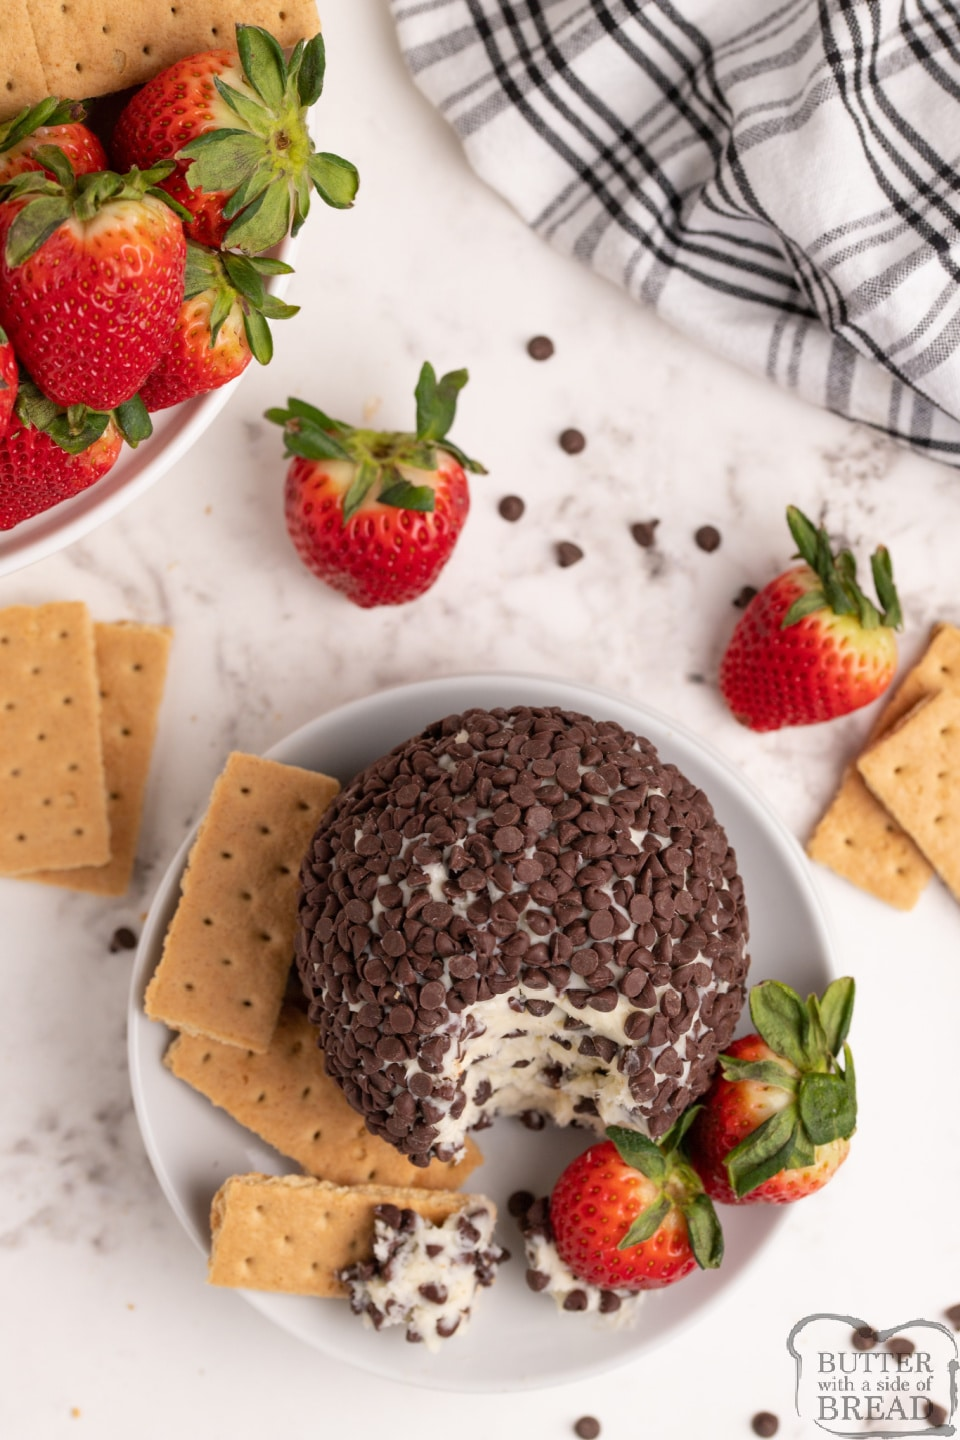 Cheesecake Cheese Ball recipe made with only 5 ingredients for an easy appetizer! This chocolate chip cheesecake cheese ball pairs perfectly with fresh strawberries and graham crackers and only takes a few minutes to make!